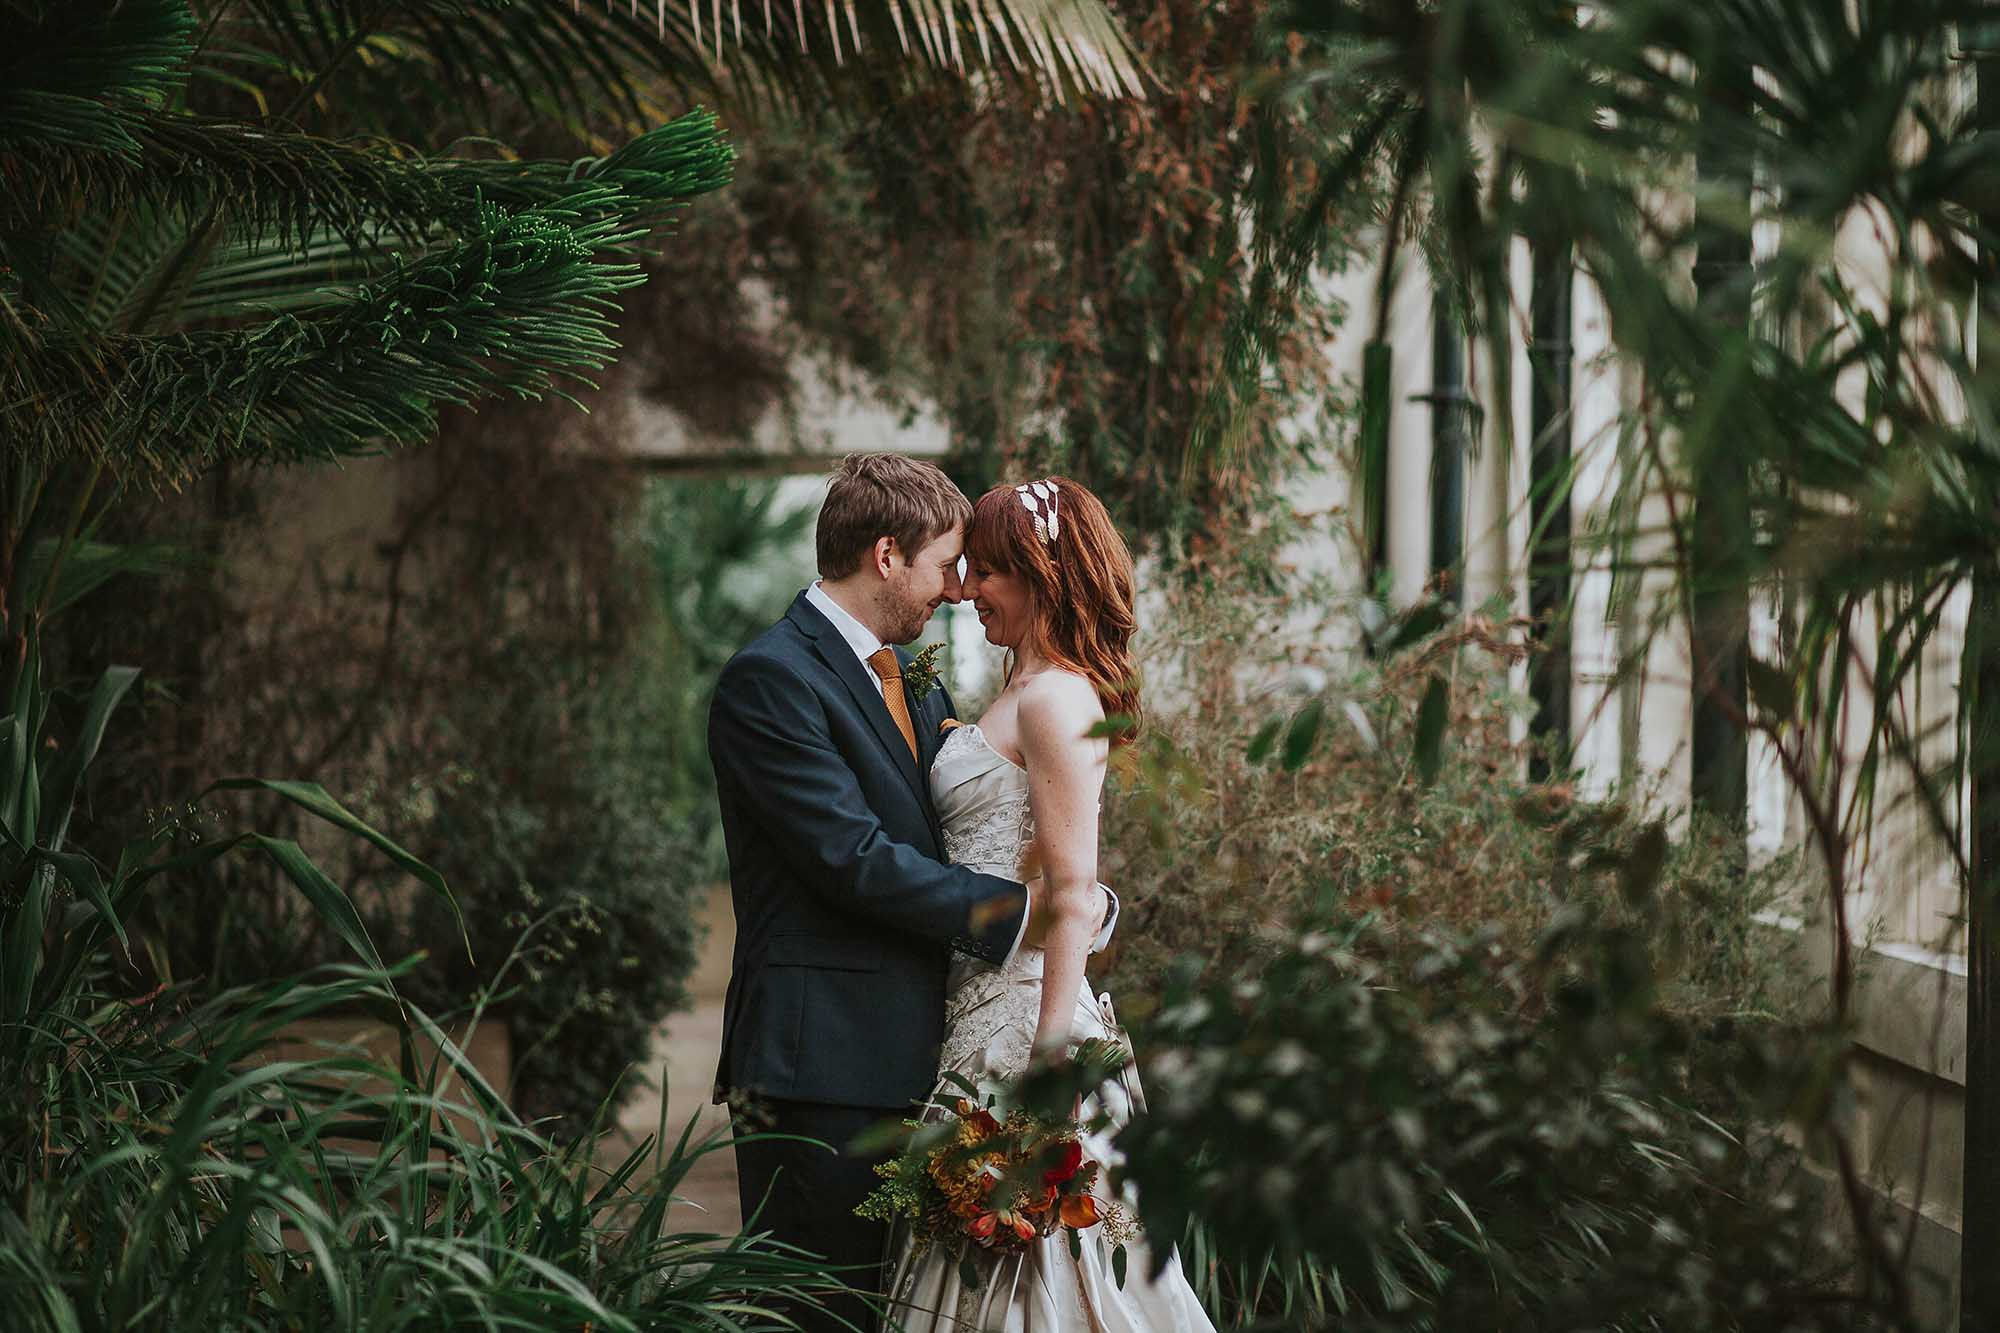 Sheffield wedding at the Botanical Gardens